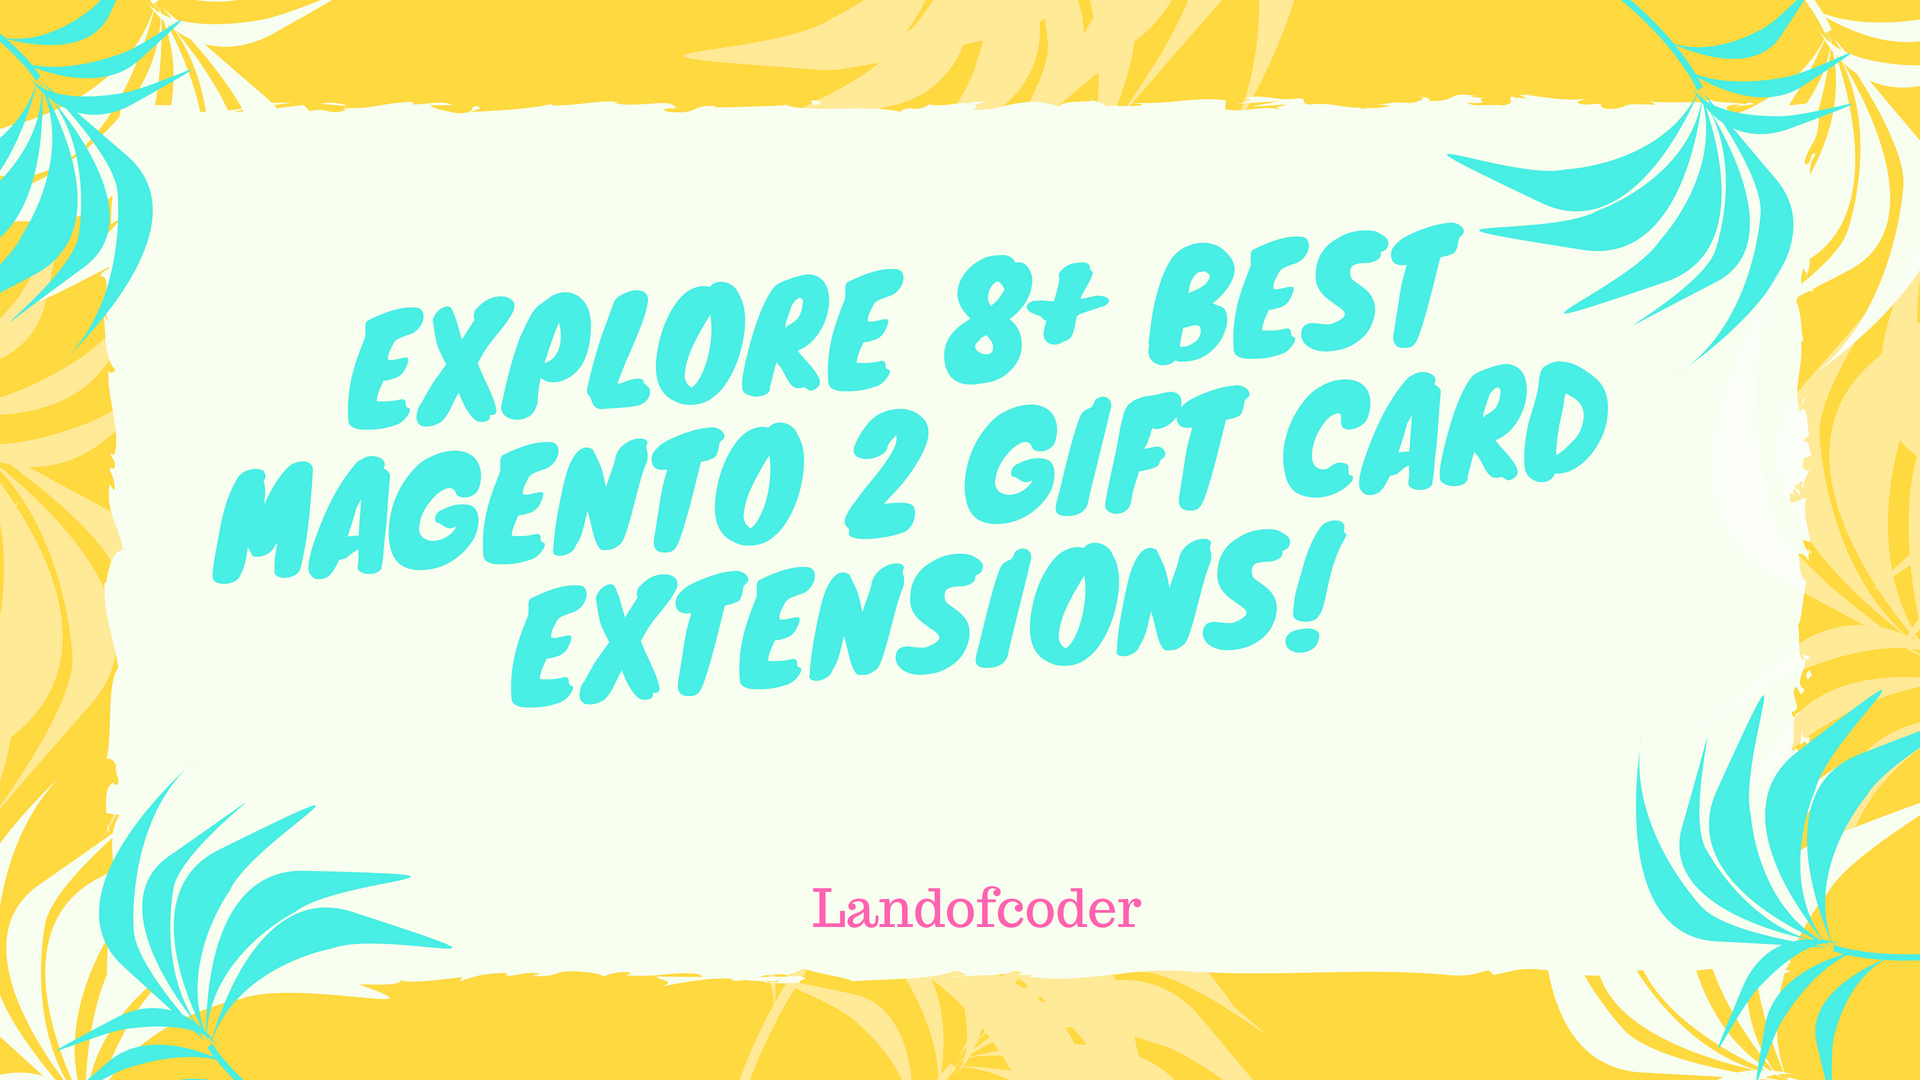 Explore 8+ best magento 2 gift card extensions